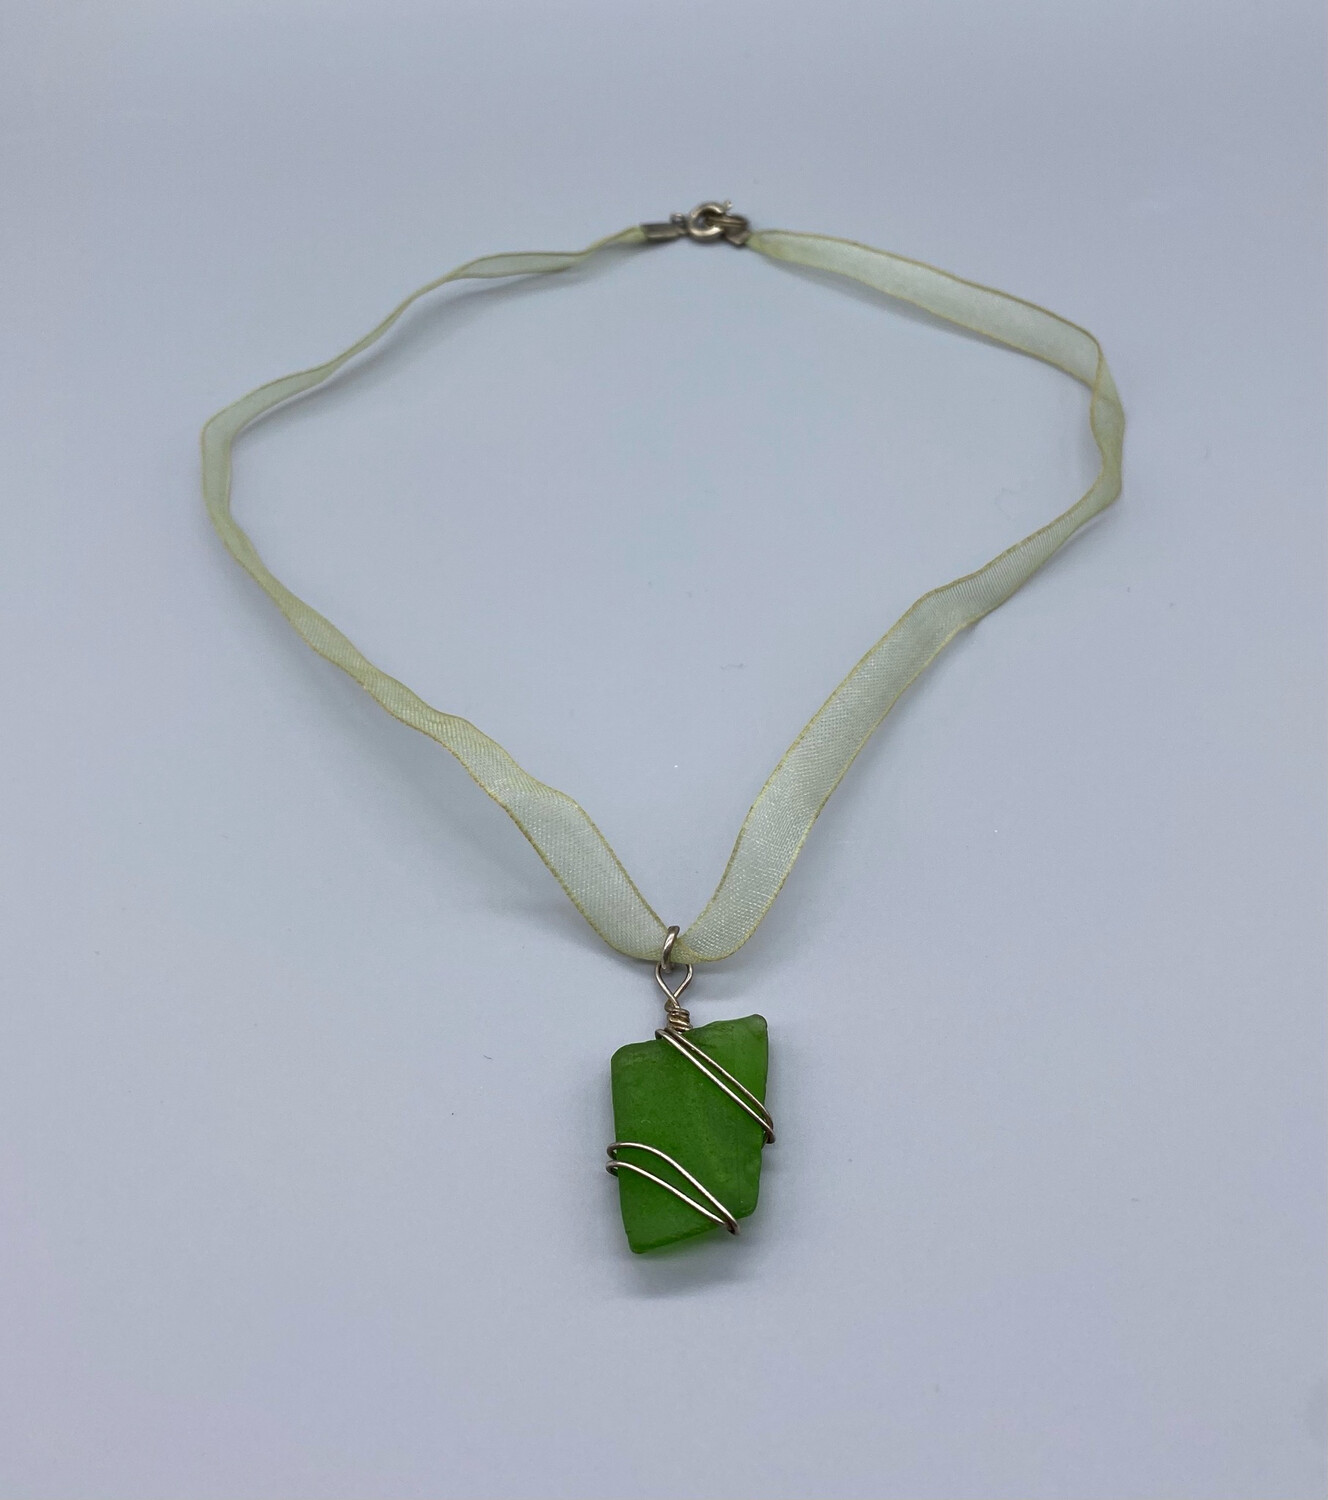 Vintage Necklace With Green Gemstone